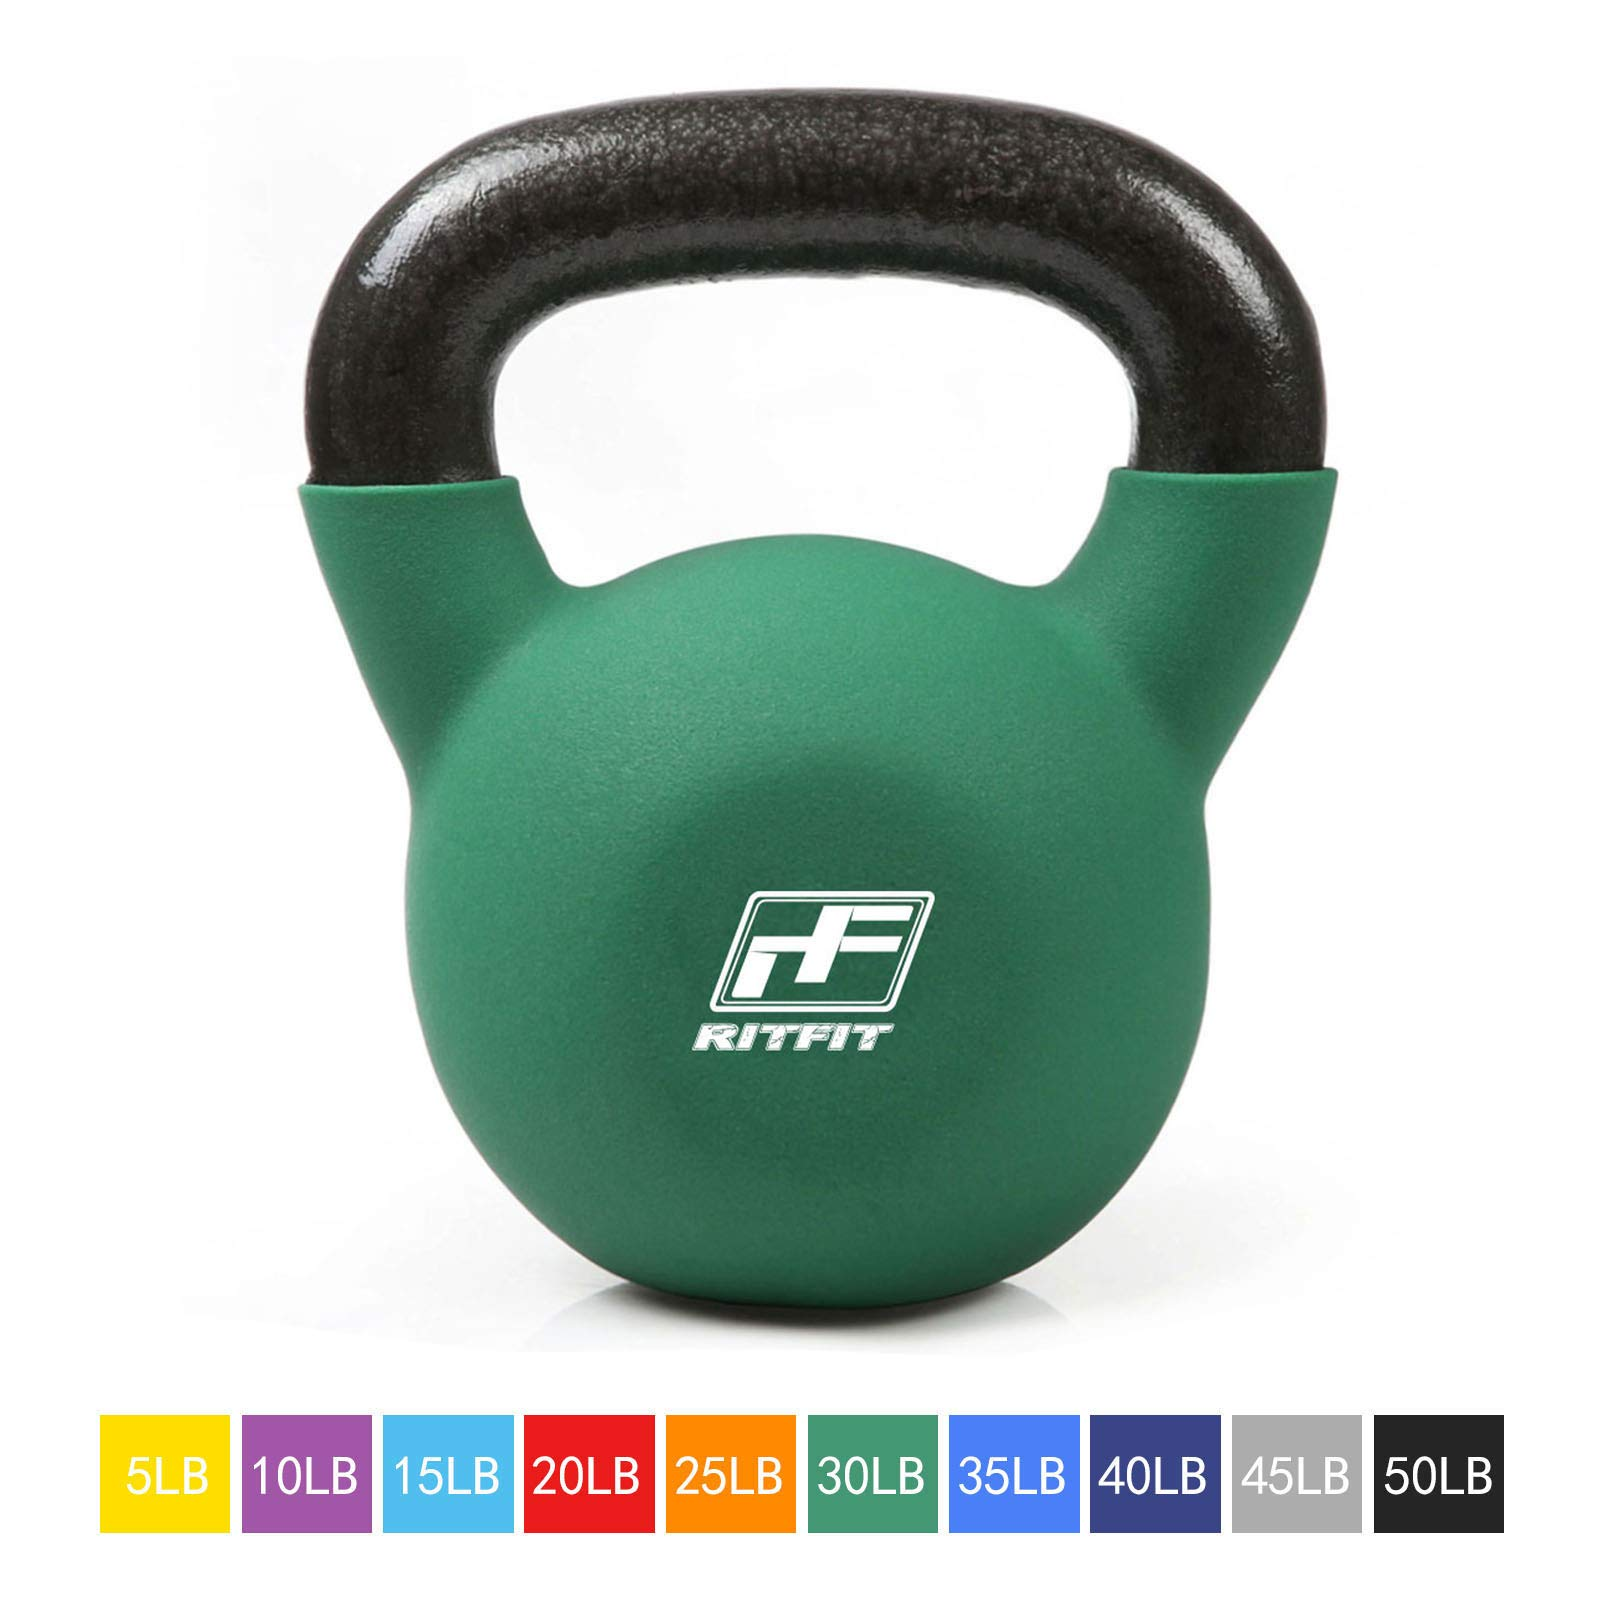 RitFit Neoprene Coated Solid Cast Iron Kettlebell - Great for Full Body Workout, Cross-Training, Weight Loss & Strength Training (5/10/15/20/25/30/35/40/45/50 LB) (30LB(Green))